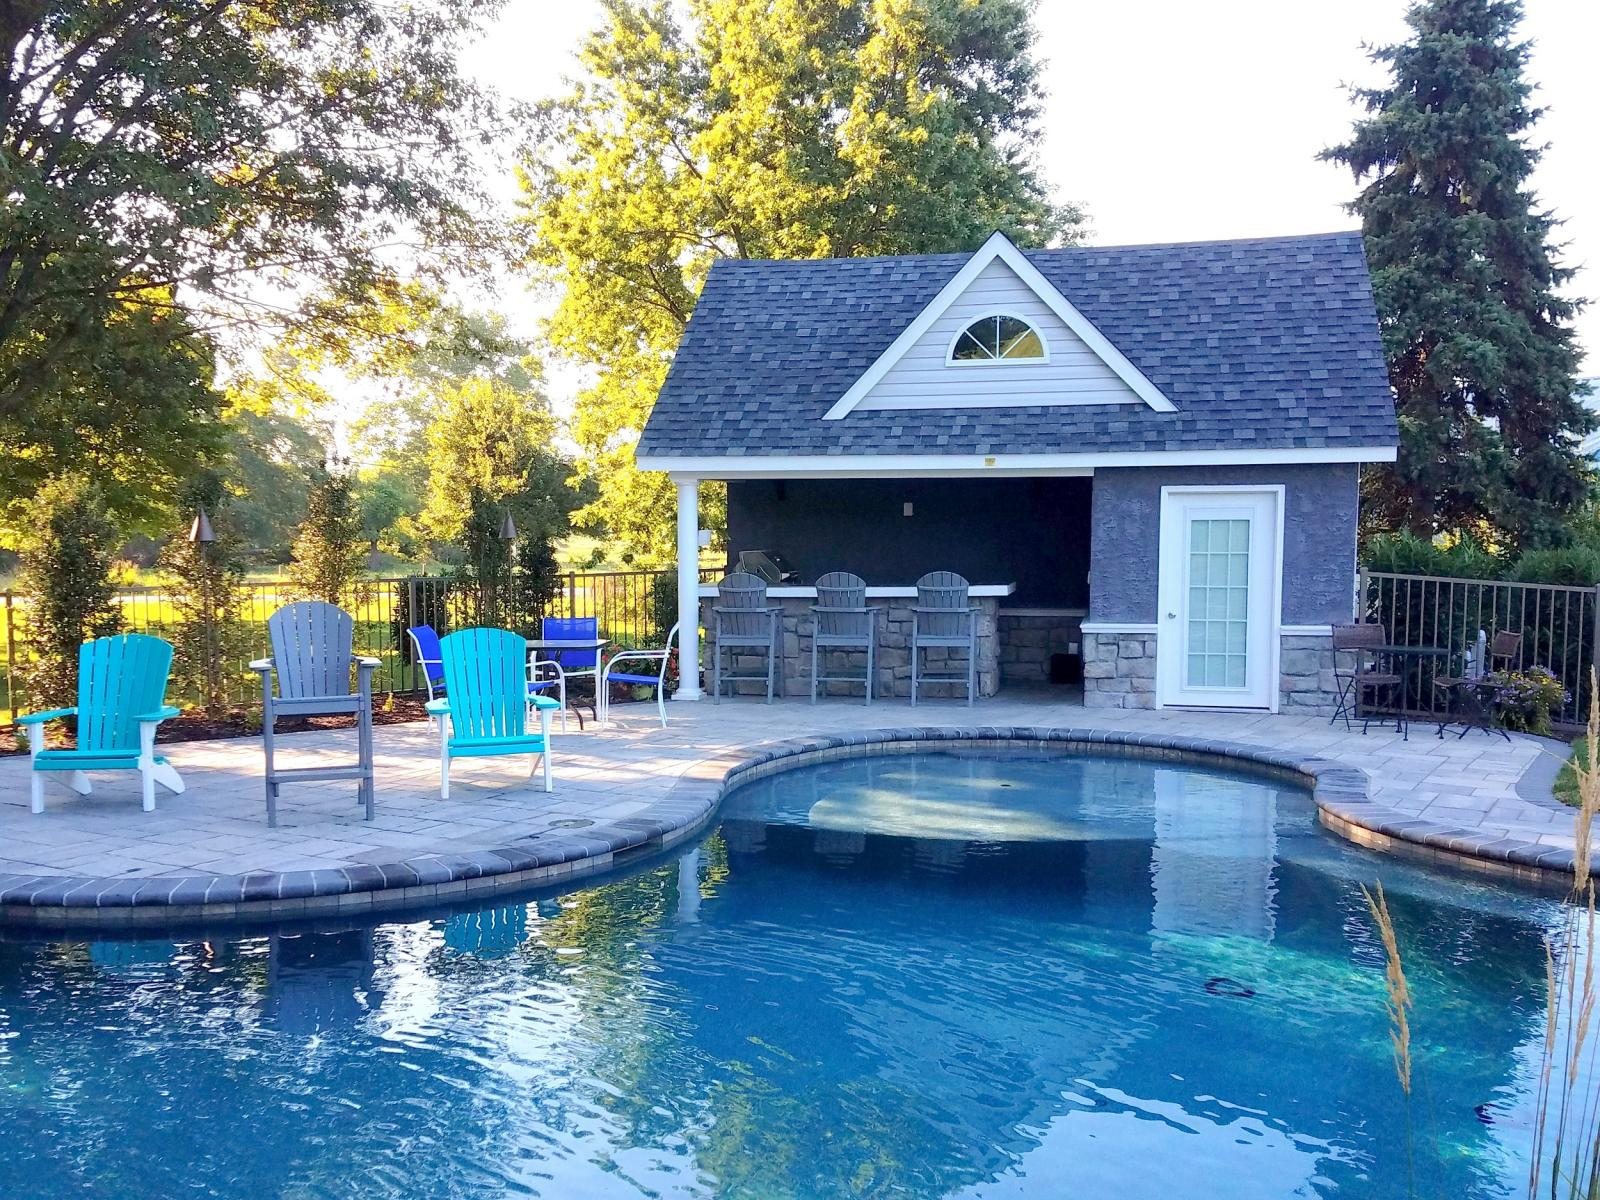 Avalon pool house homestead structures home decor catalogs for Pool design mcmurray pa